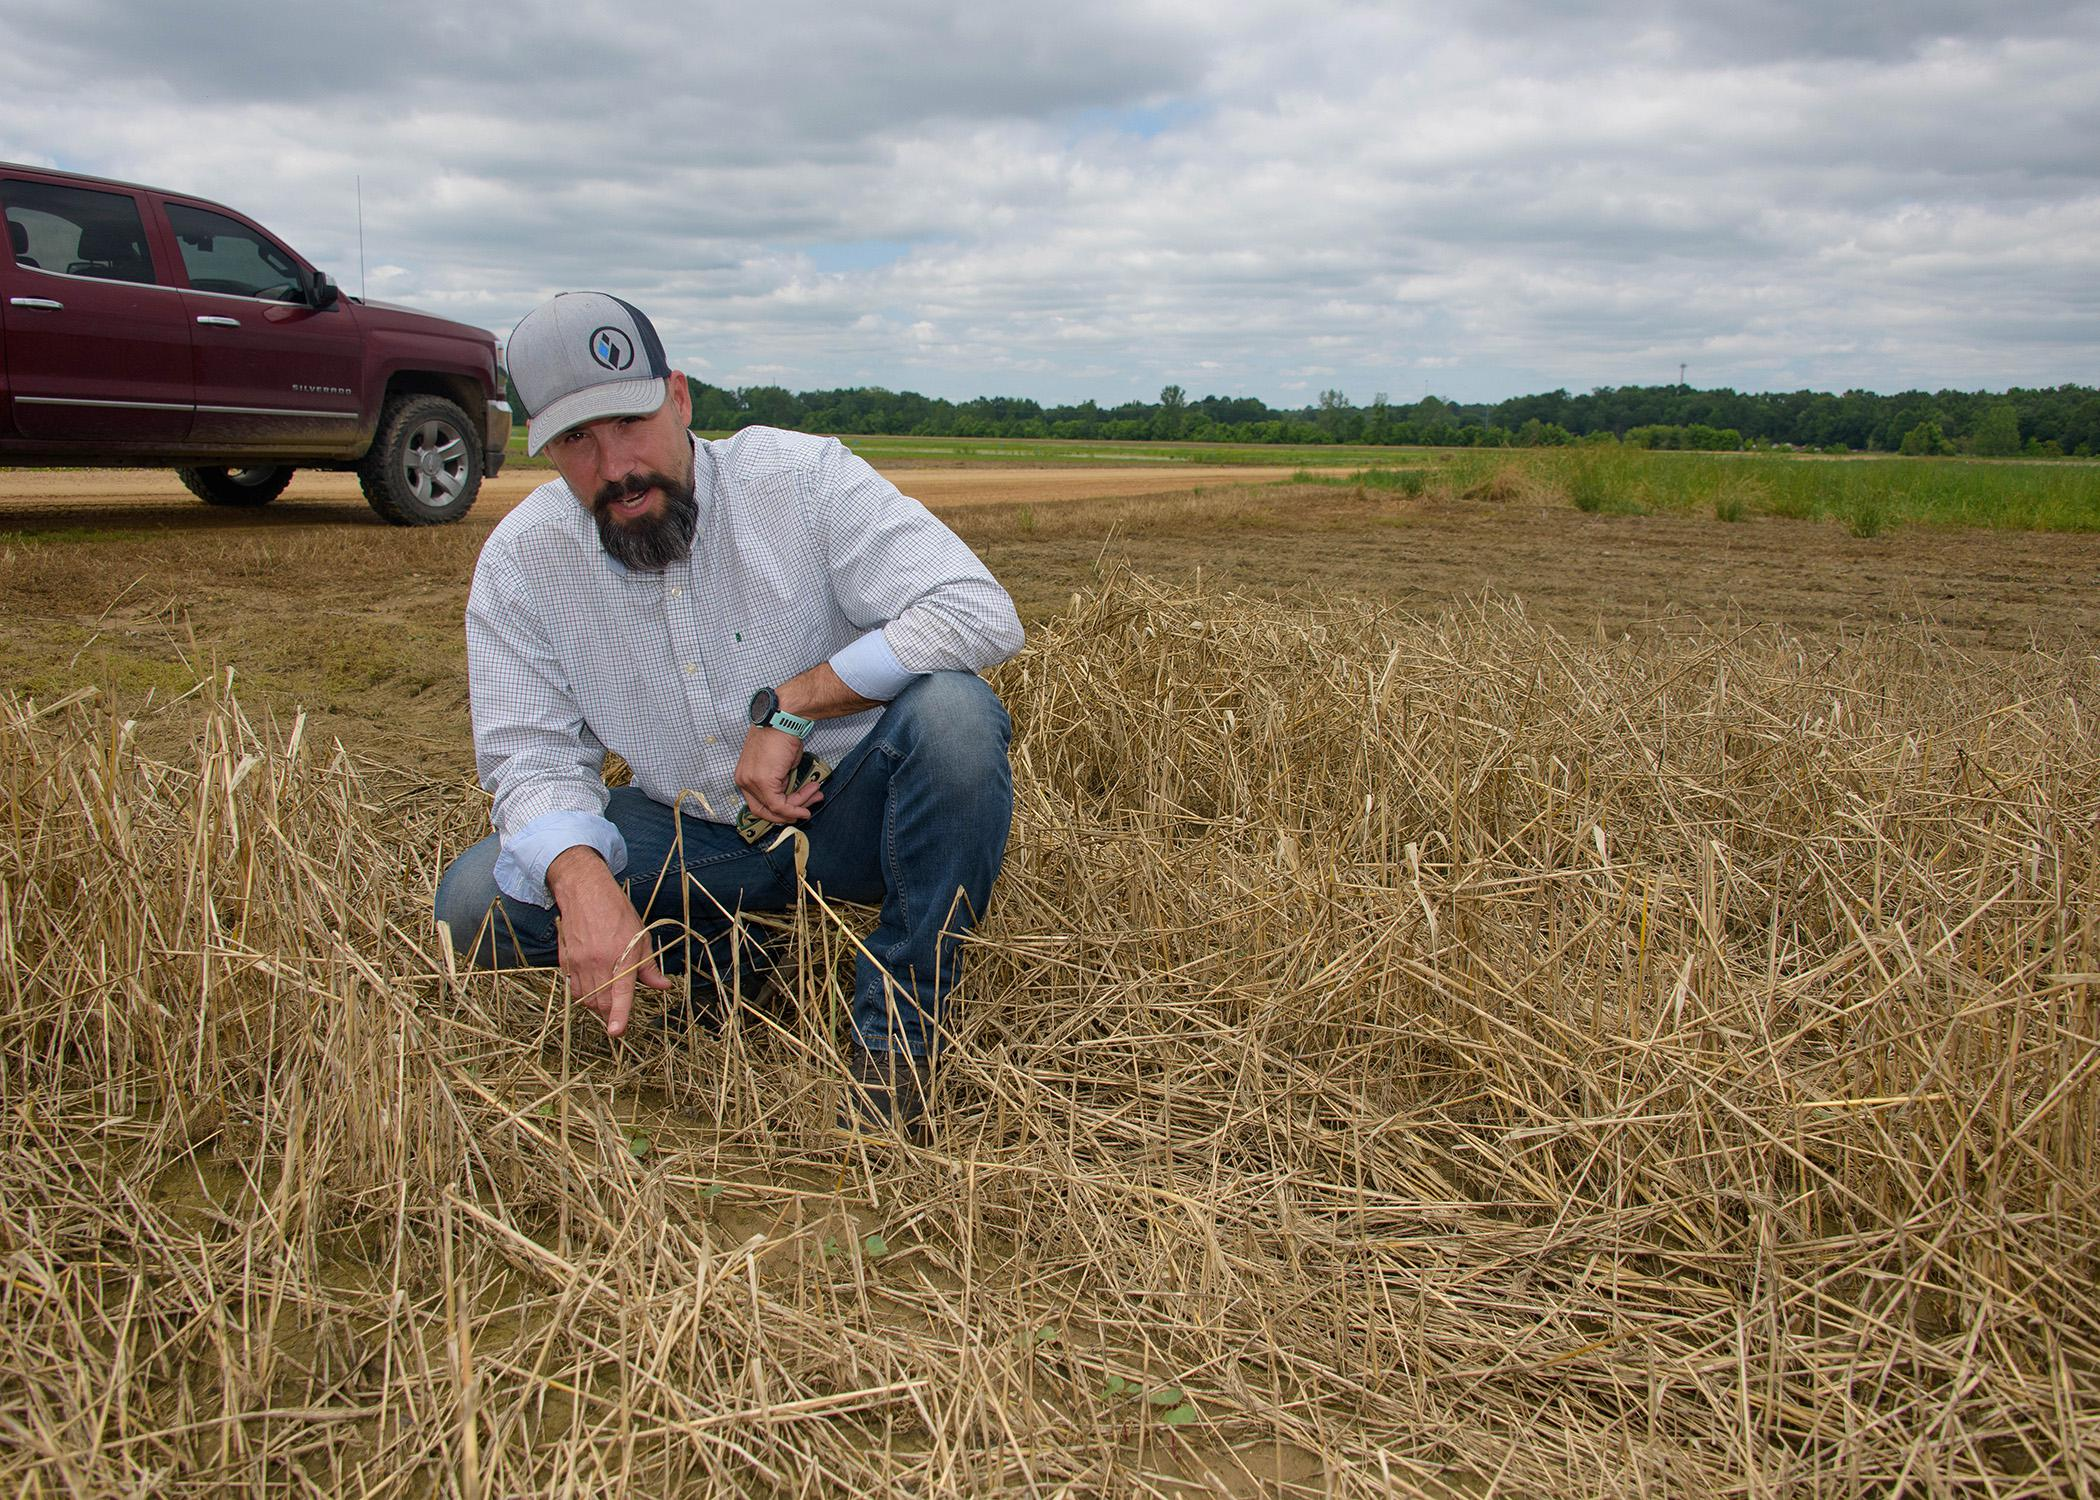 A man in a hat kneels among straw to point at tiny plants.